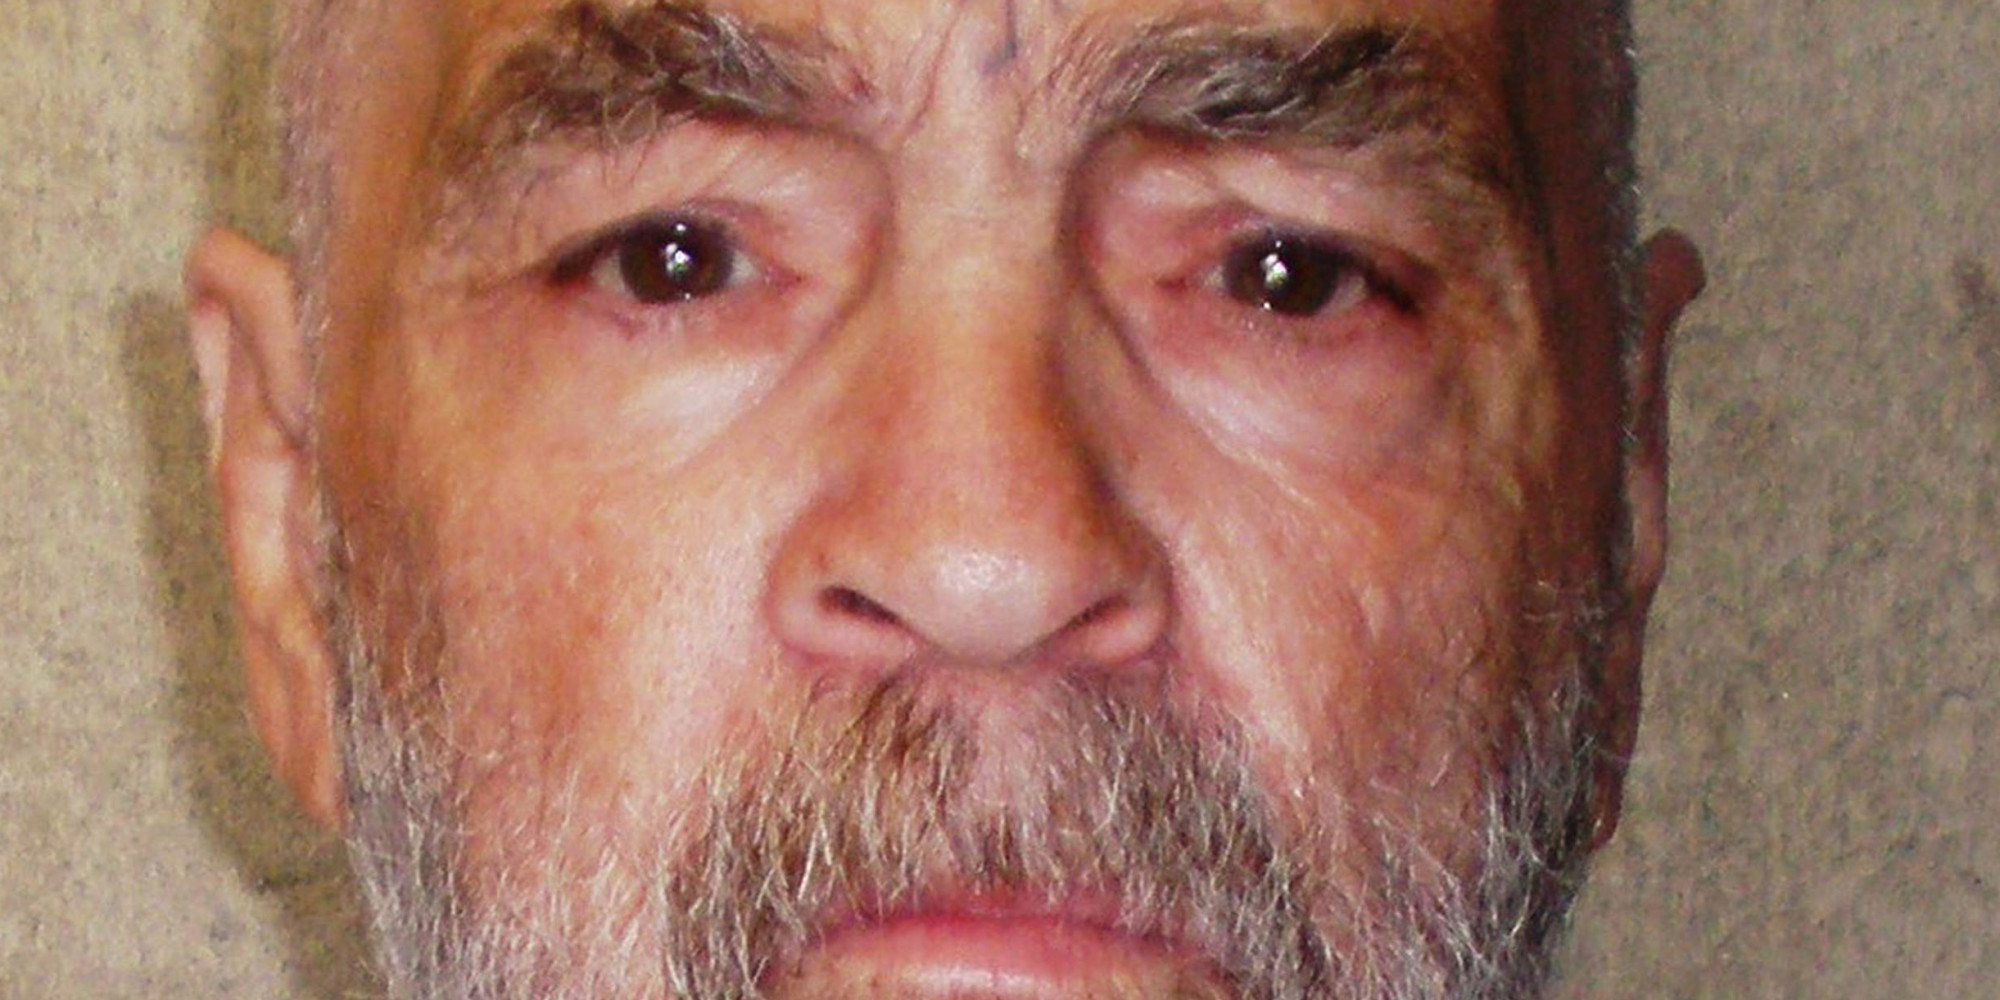 charles manson is not a serial killer experts say huffpost